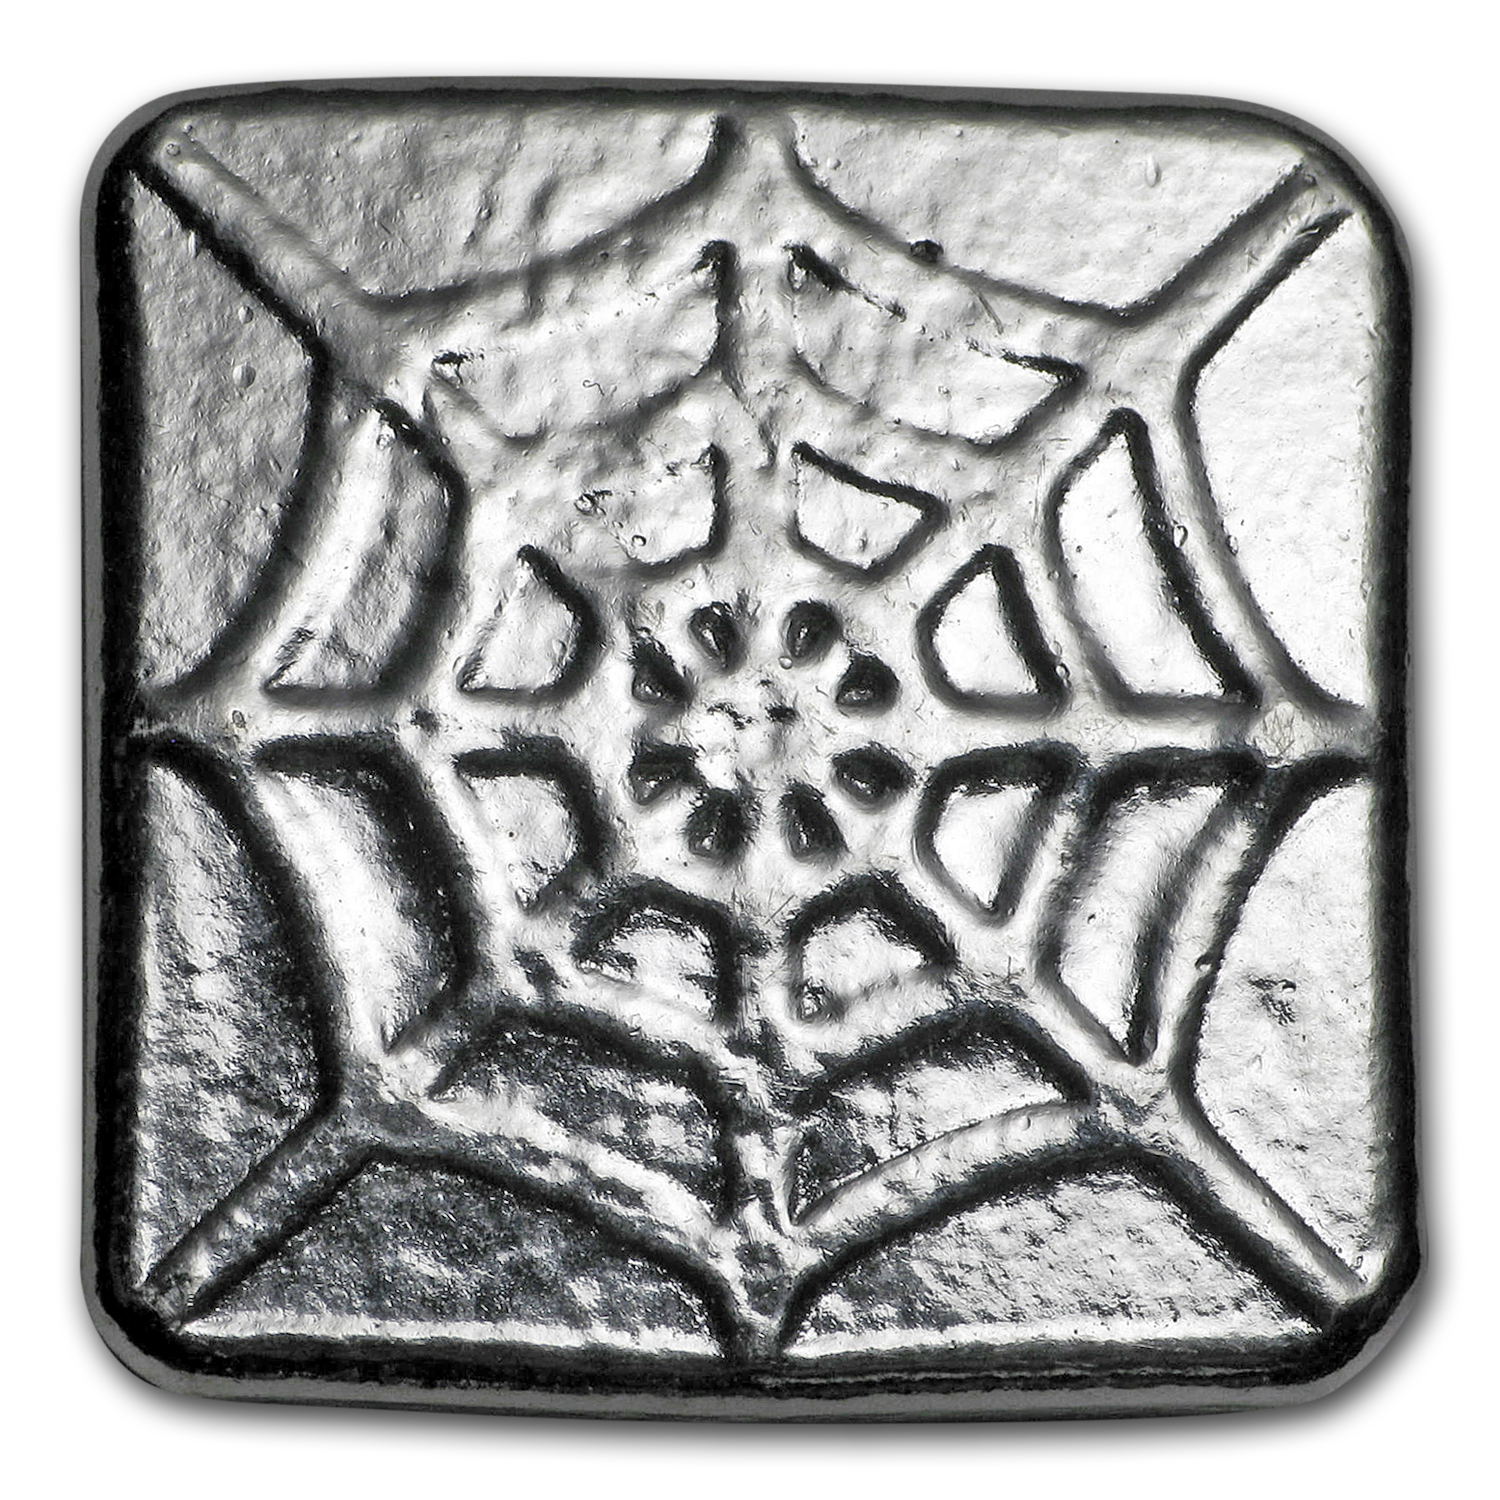 1 oz Silver Square - Yeager Poured Silver (Spiderweb)